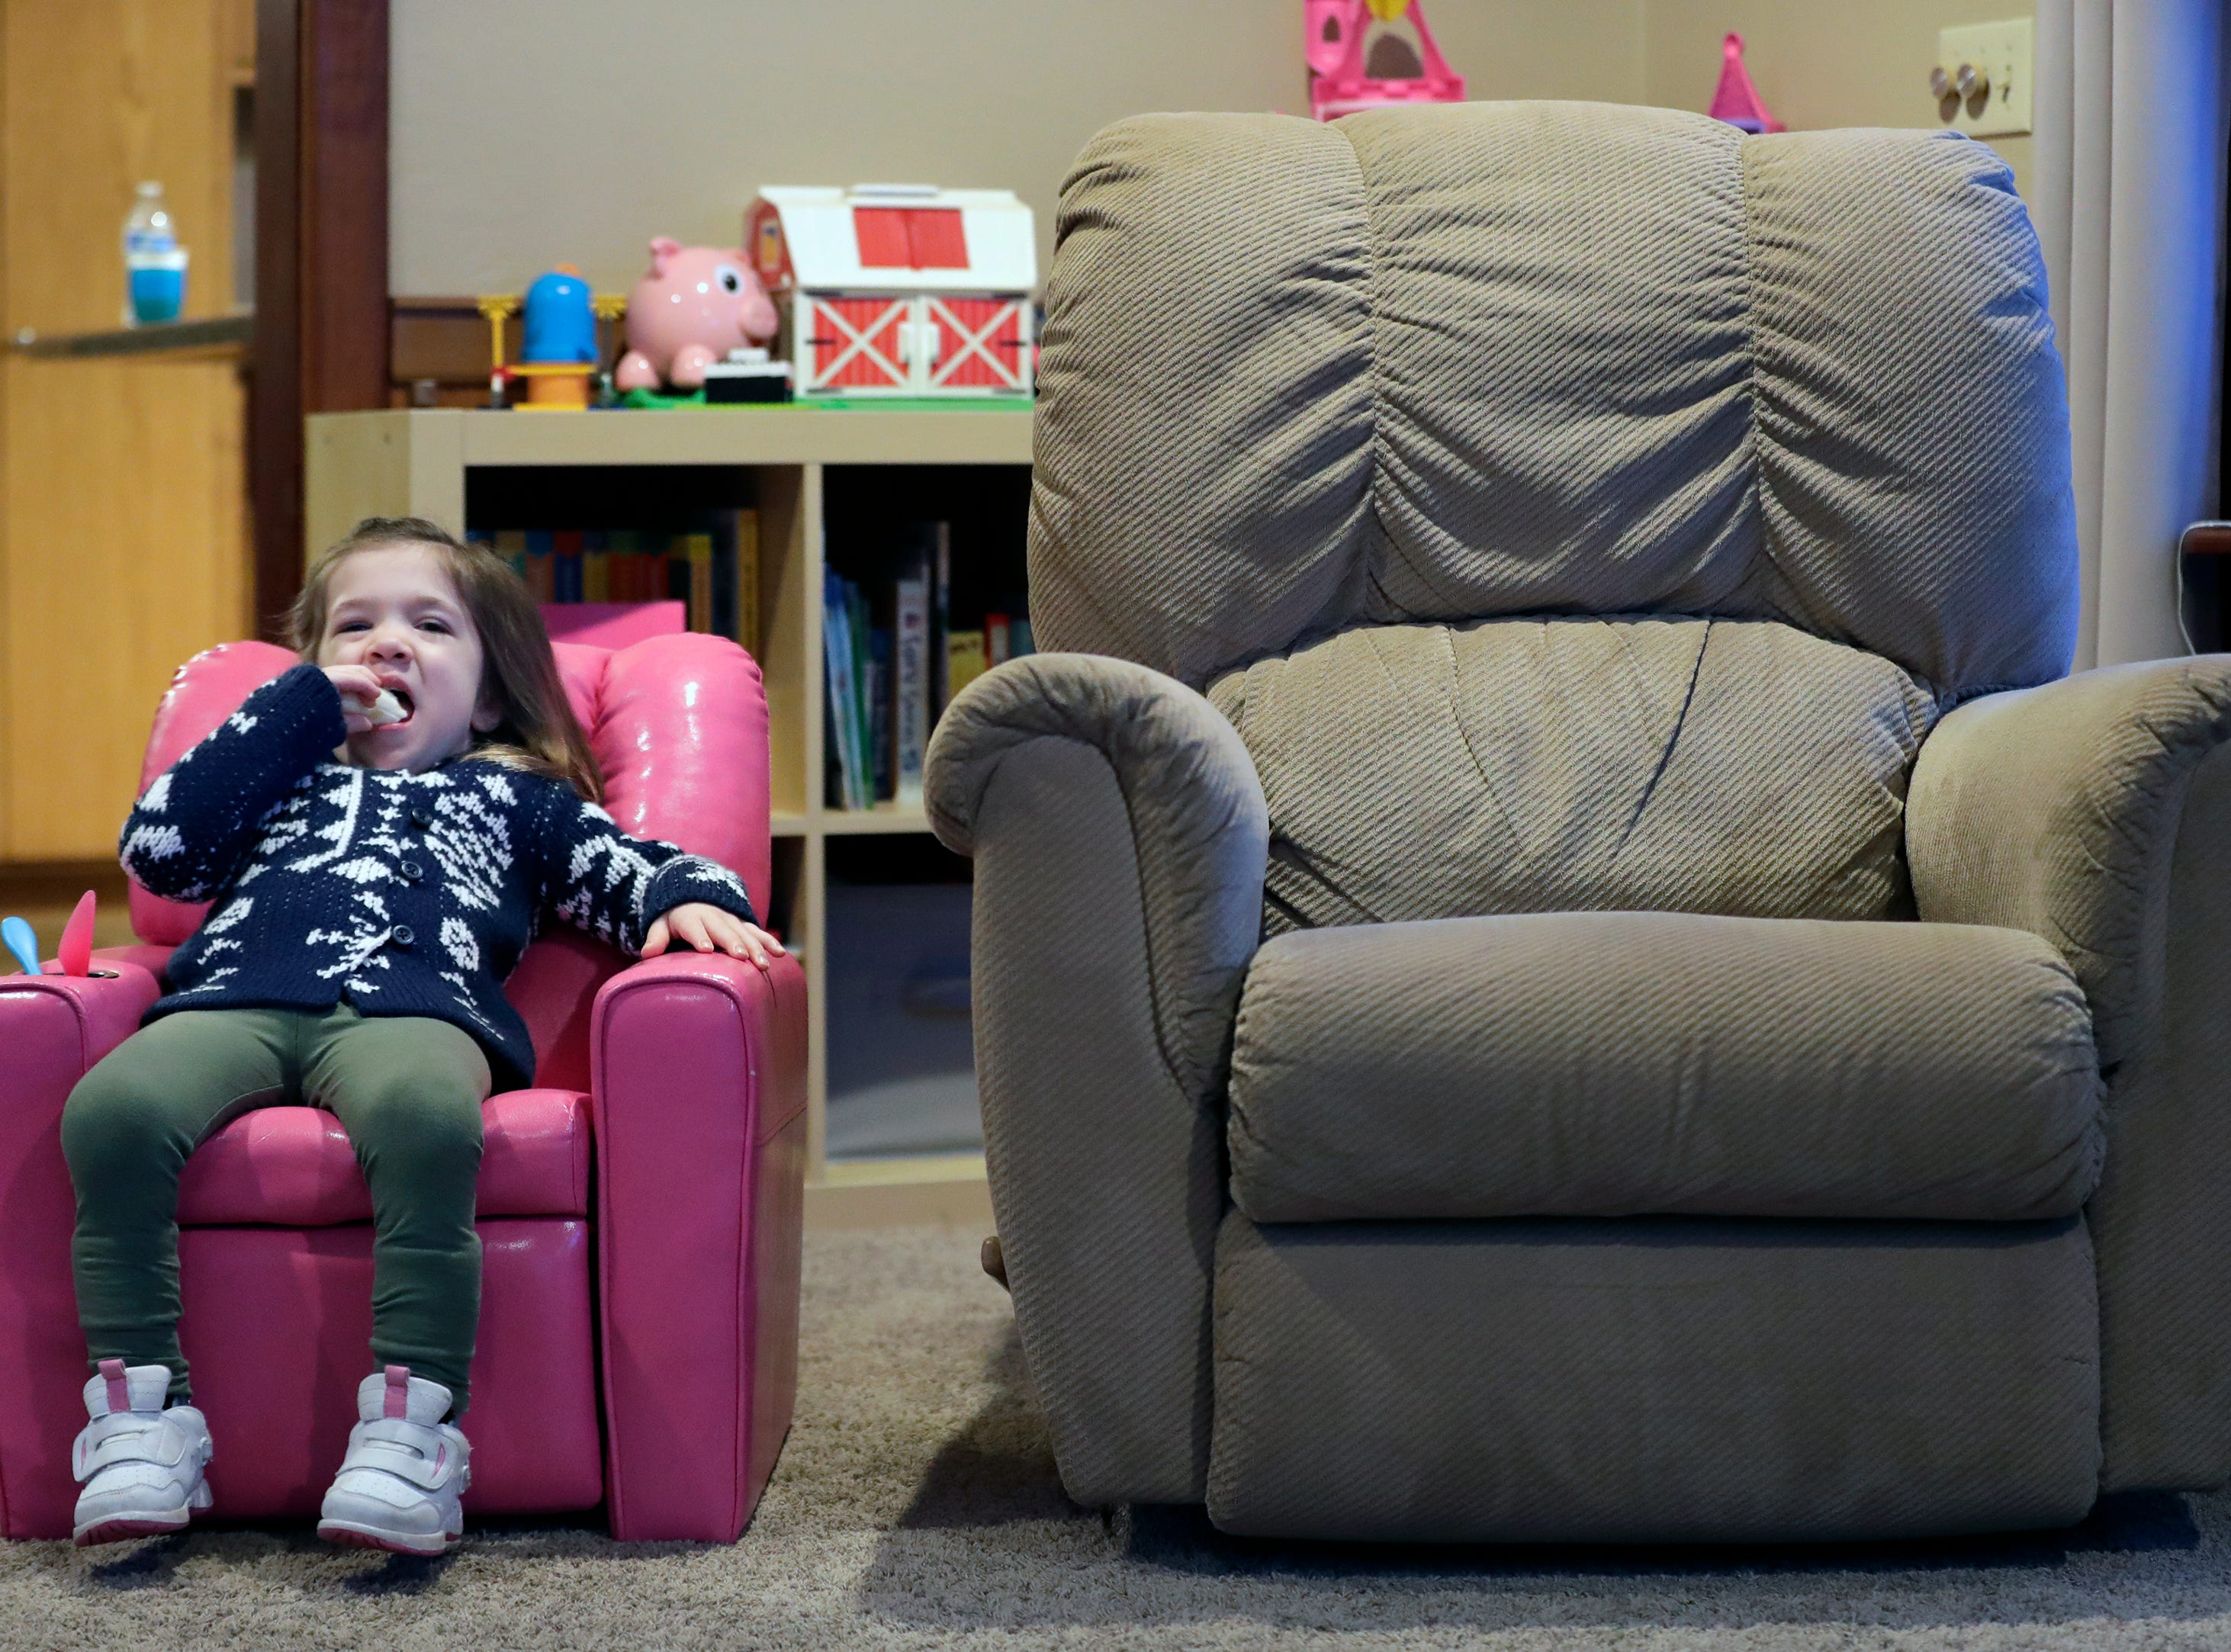 Avi Brennan, 4, enjoys a bananna as she relaxes before heading out for her first day of school Monday, January 7, 2019, at her home in Clayton, Wis. She is attending Washington School of Early Learning in Neenah.Dan Powers/USA TODAY NETWORK-Wisconsin